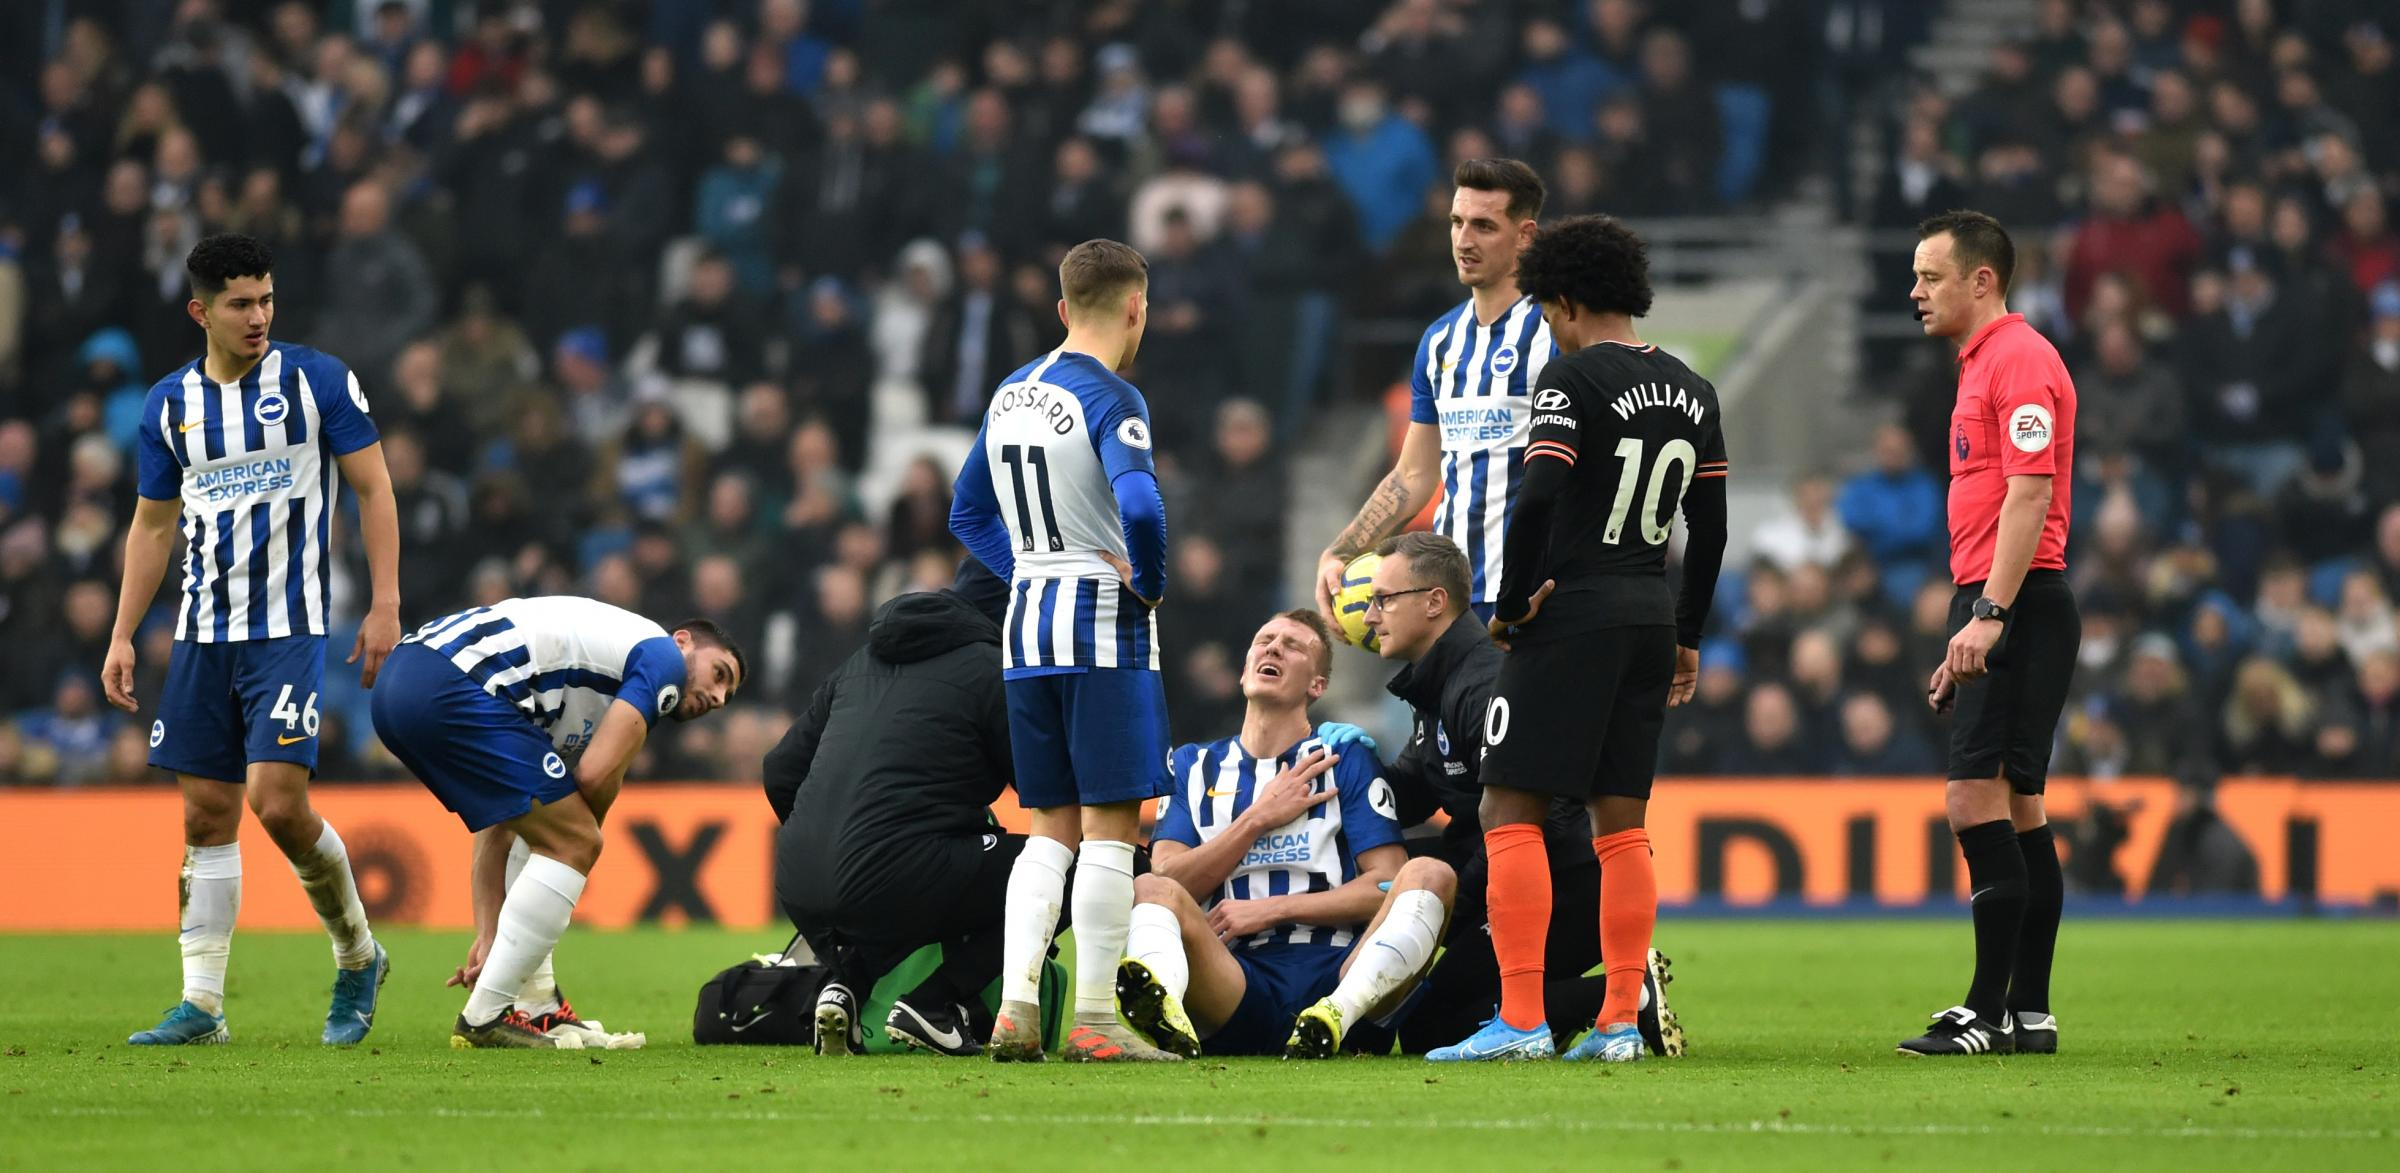 Injuries starting to pile up for Albion rivals